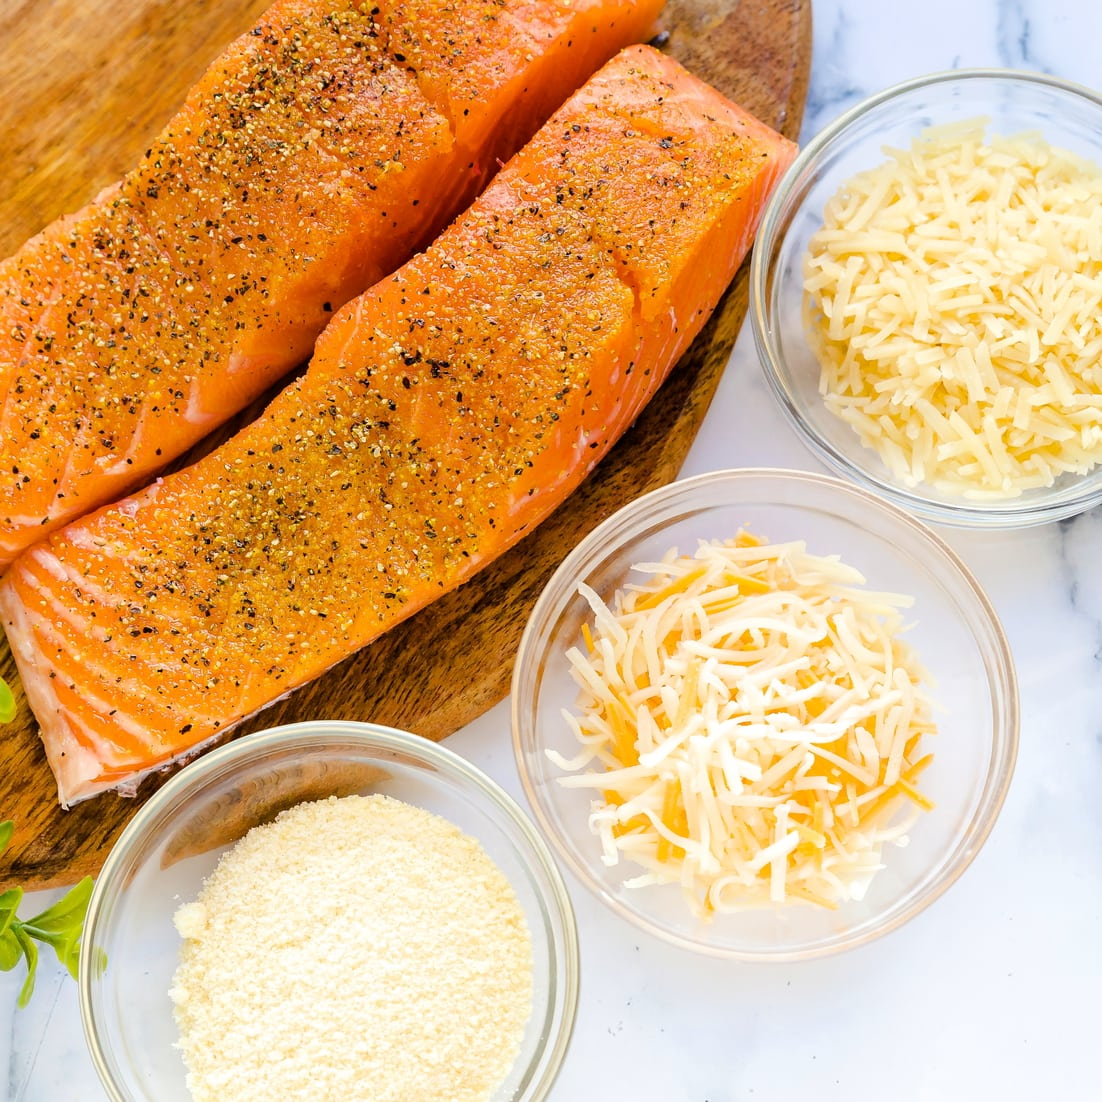 Seasoned salmon fillet next to different types of cheeses for baking